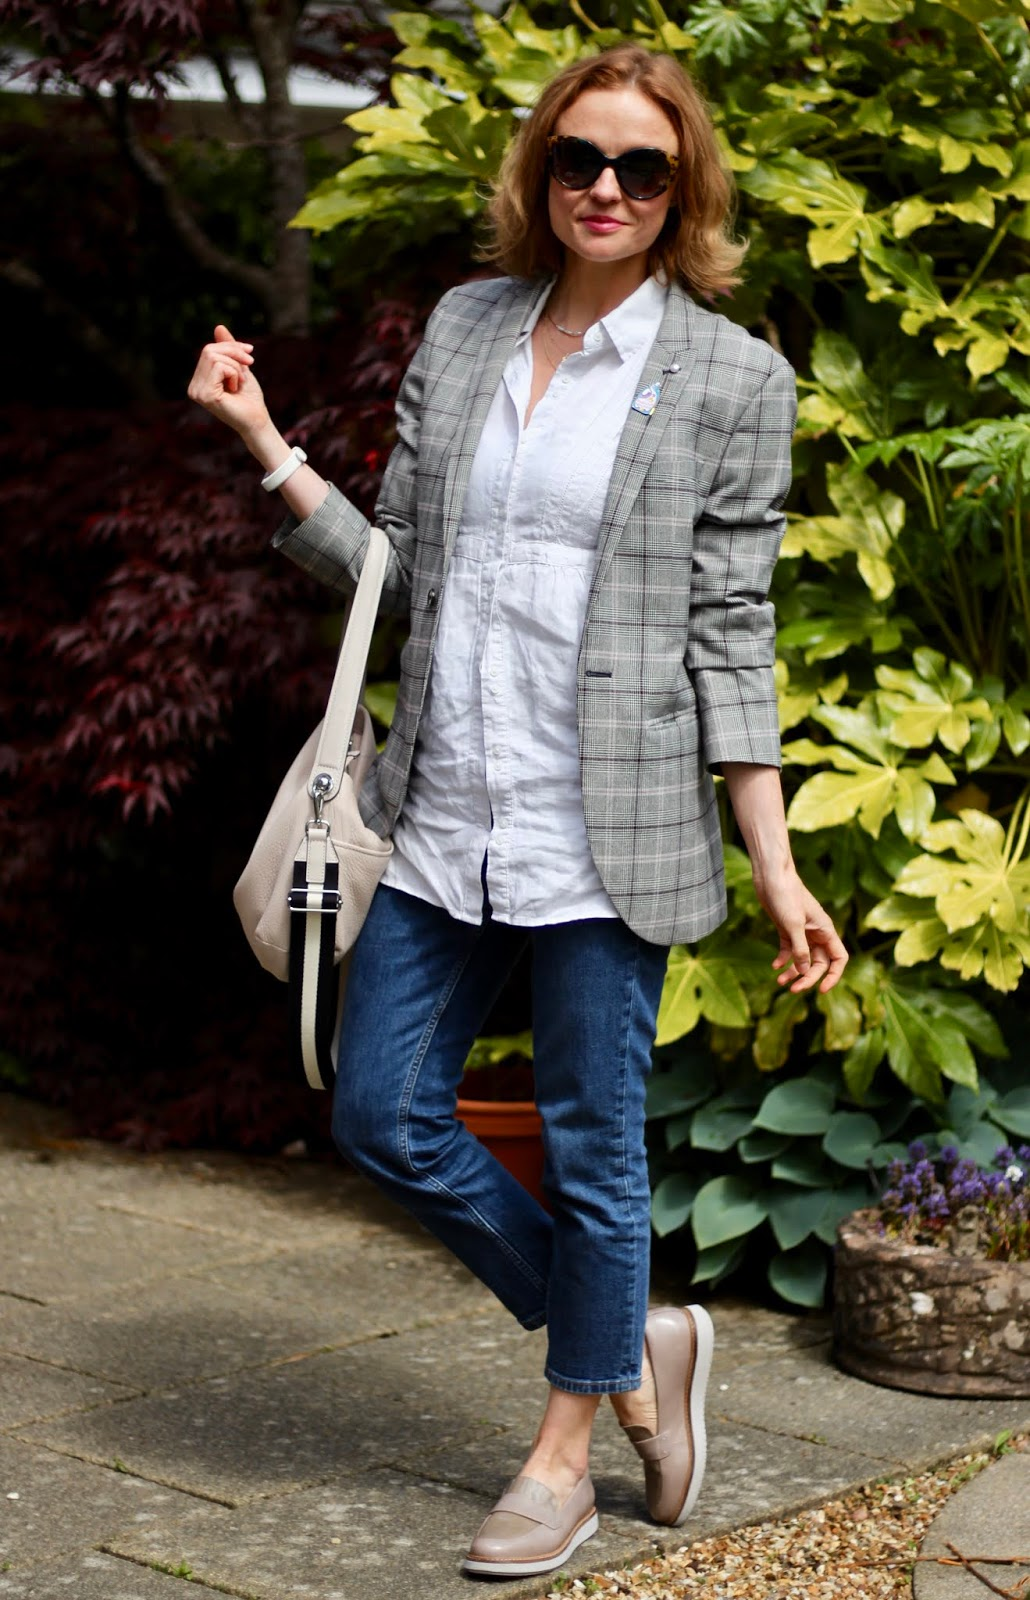 Checked Blazer, white shirt, jeans and loafers | Classic outfit | Fake Fabulous